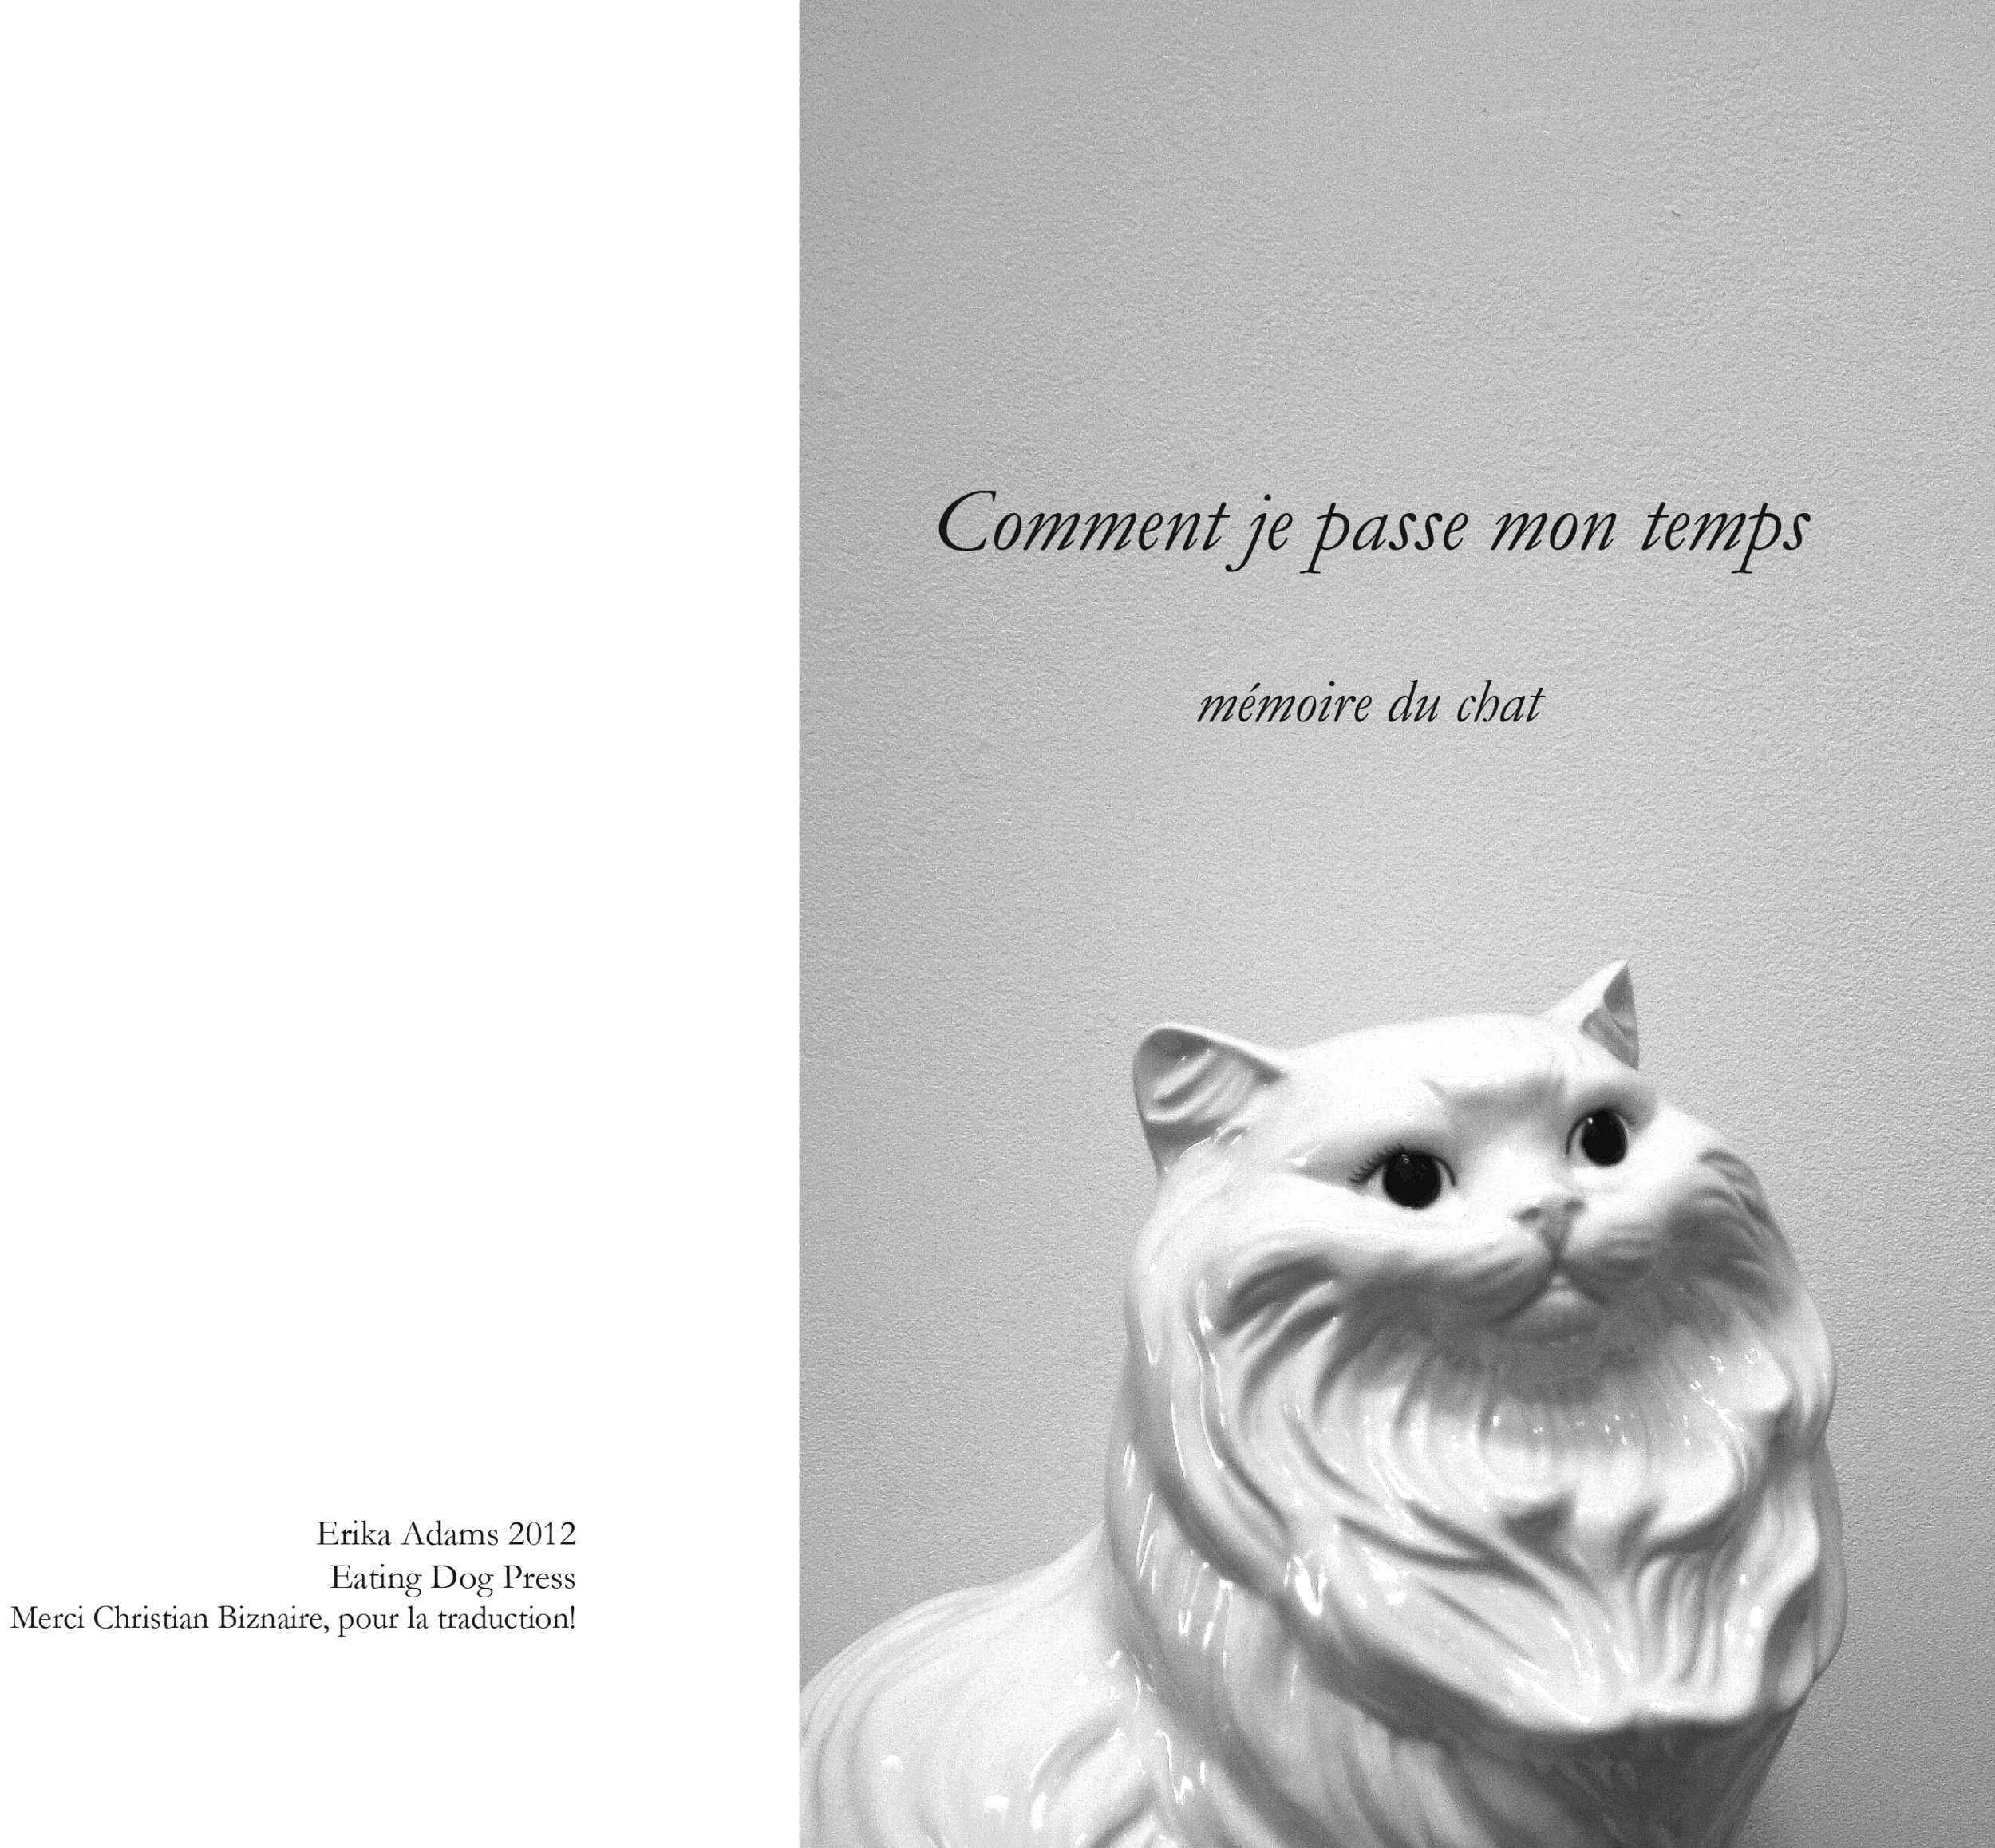 Comment je passe mon temps mémoire du chat   2012   Comment je passe mon temps, mémoire du chat  is my first French Language book. Printed as a Xerox zine, in an edition of 15, the book follows the ruminations of a ceramic cat wishing he were a real cat. Translation by Christian Biznaire.  8 x 5.5 inches, edition of fifteen.